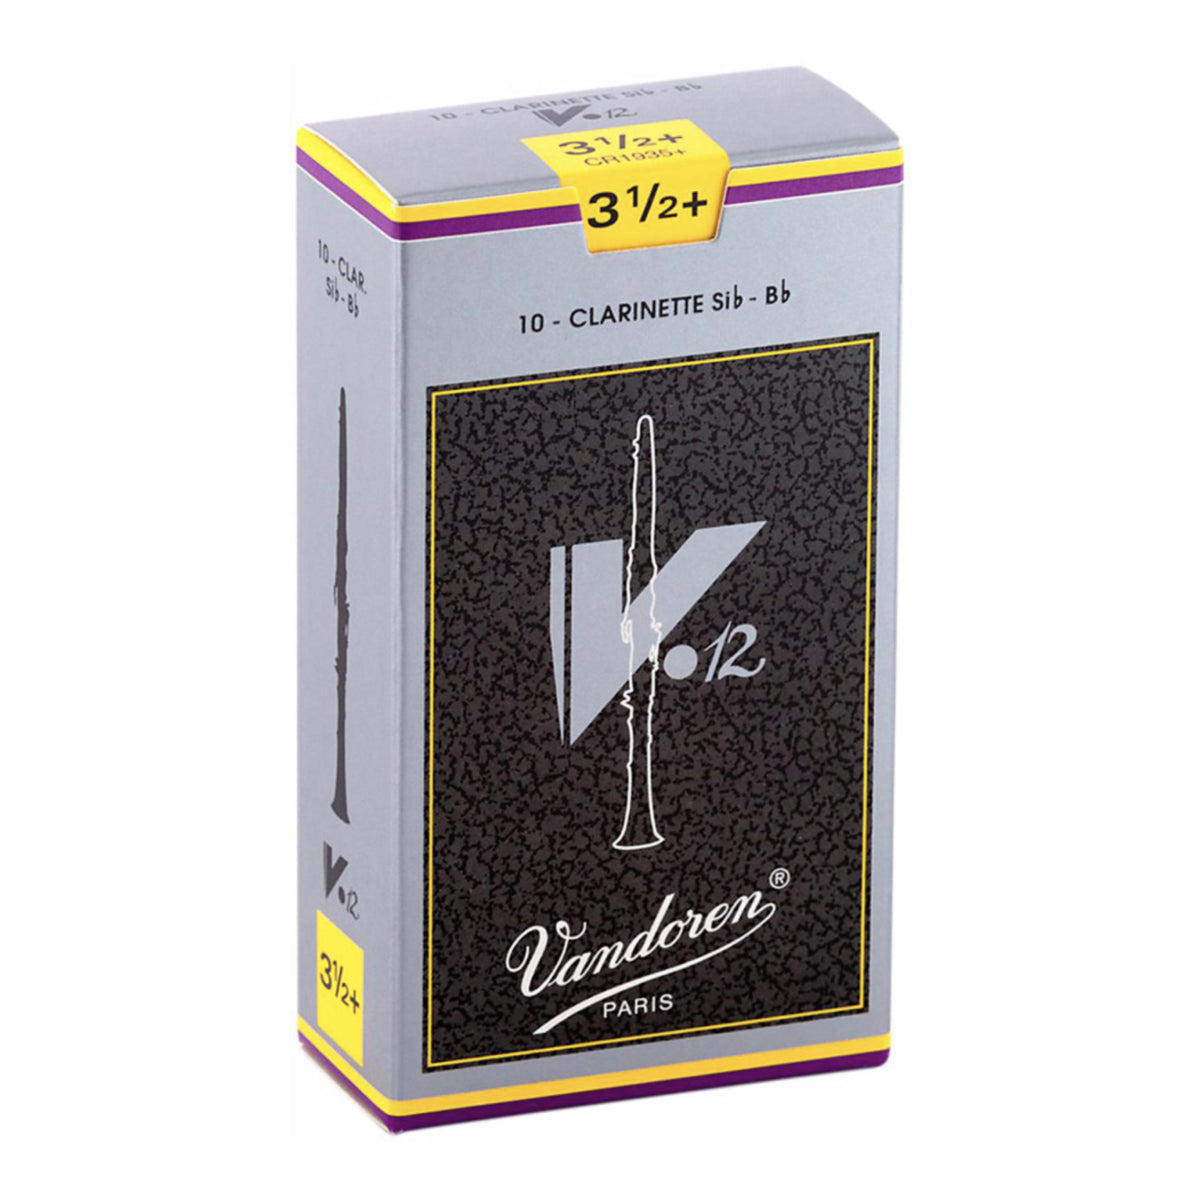 Vandoren Reed Clarinet V12 3.5+ - CR1935+